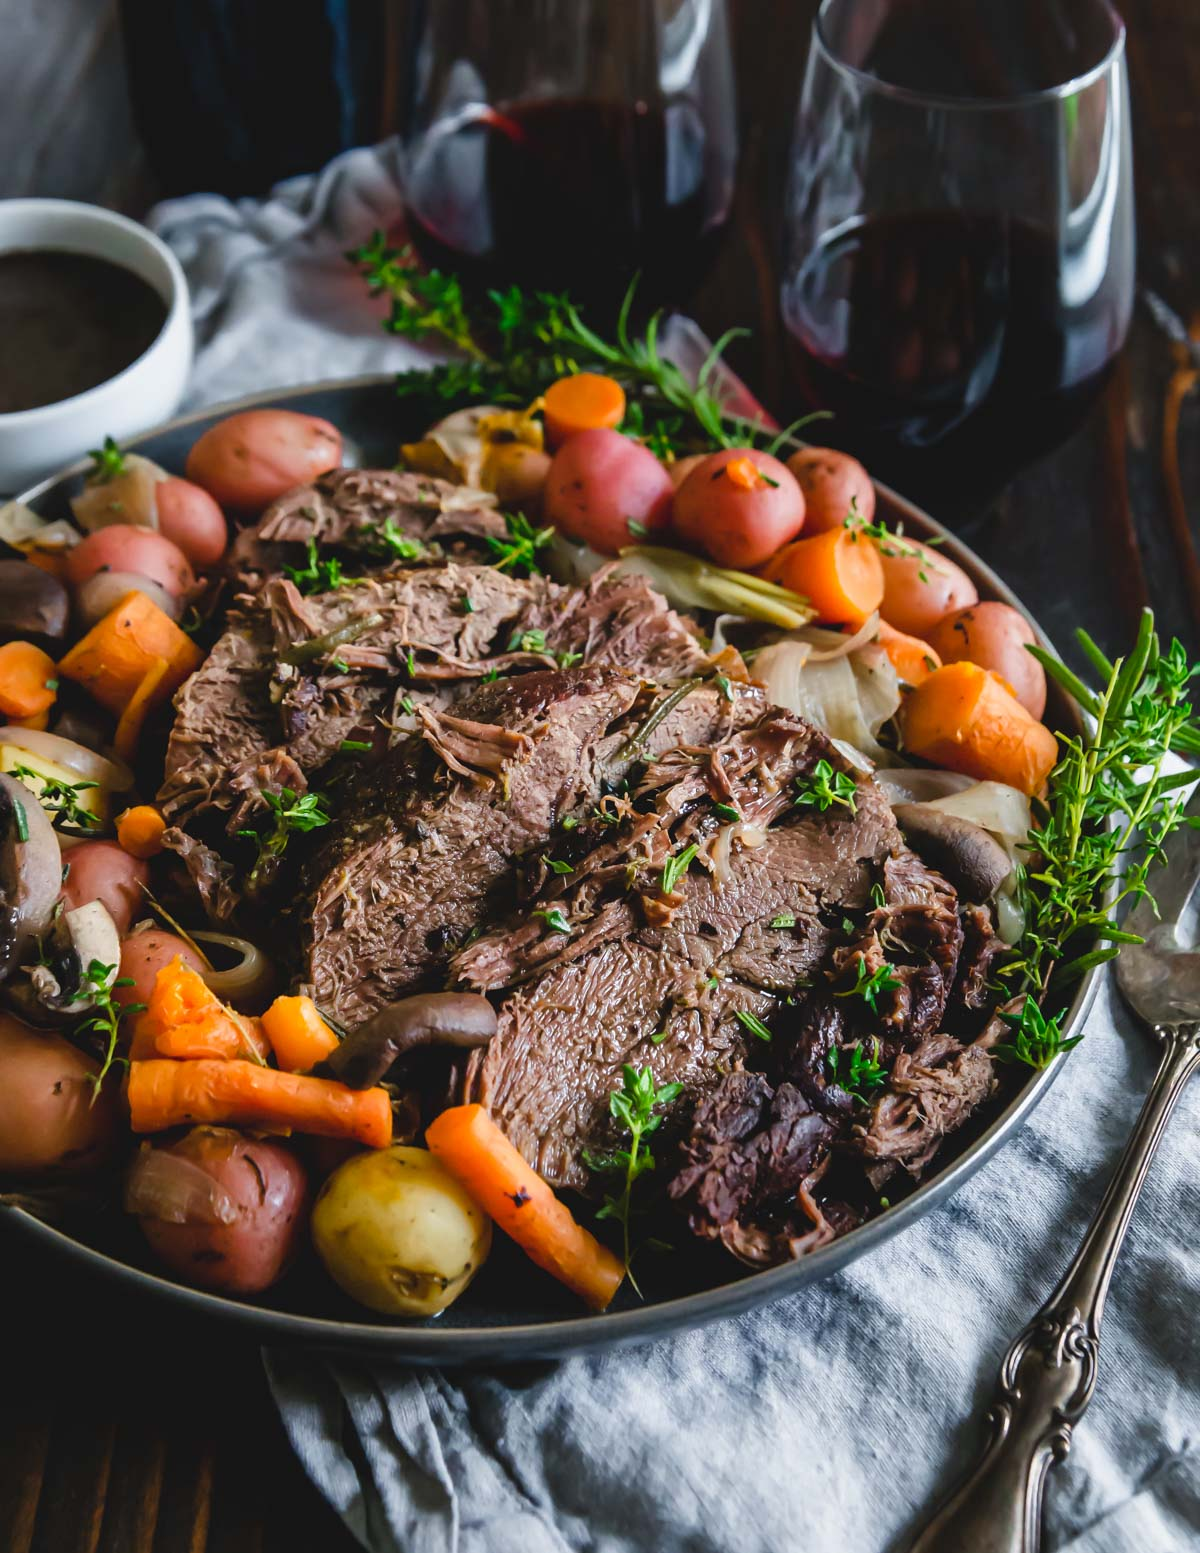 tender pressure cooked venison roast with potatoes, carrots, mushrooms and onions